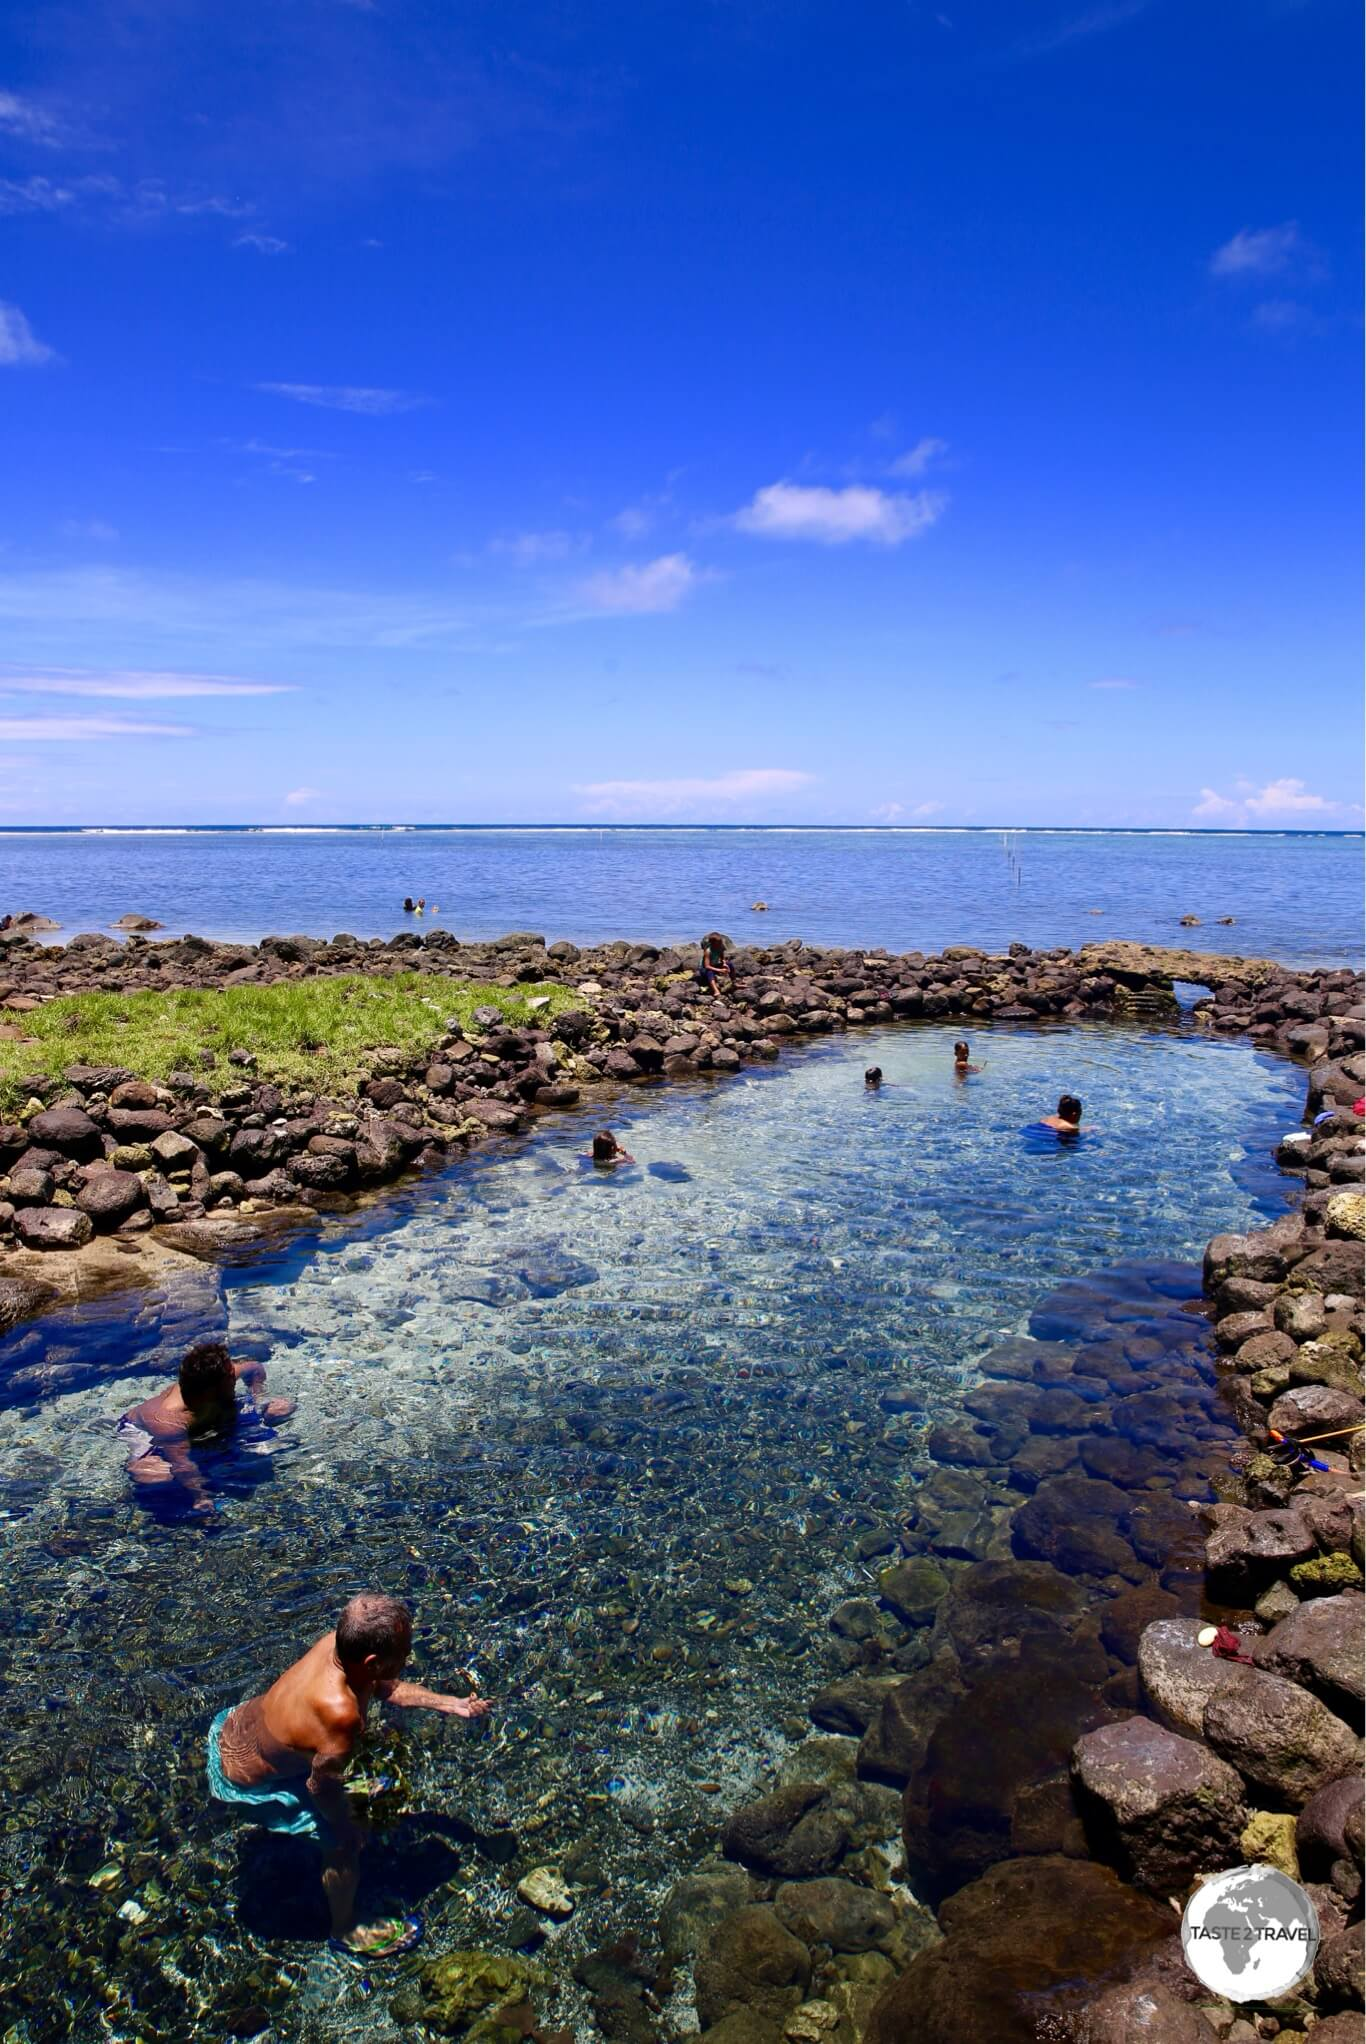 The beautiful Vaiole Tama Spring is fed by a source hidden inside a coastal cave.